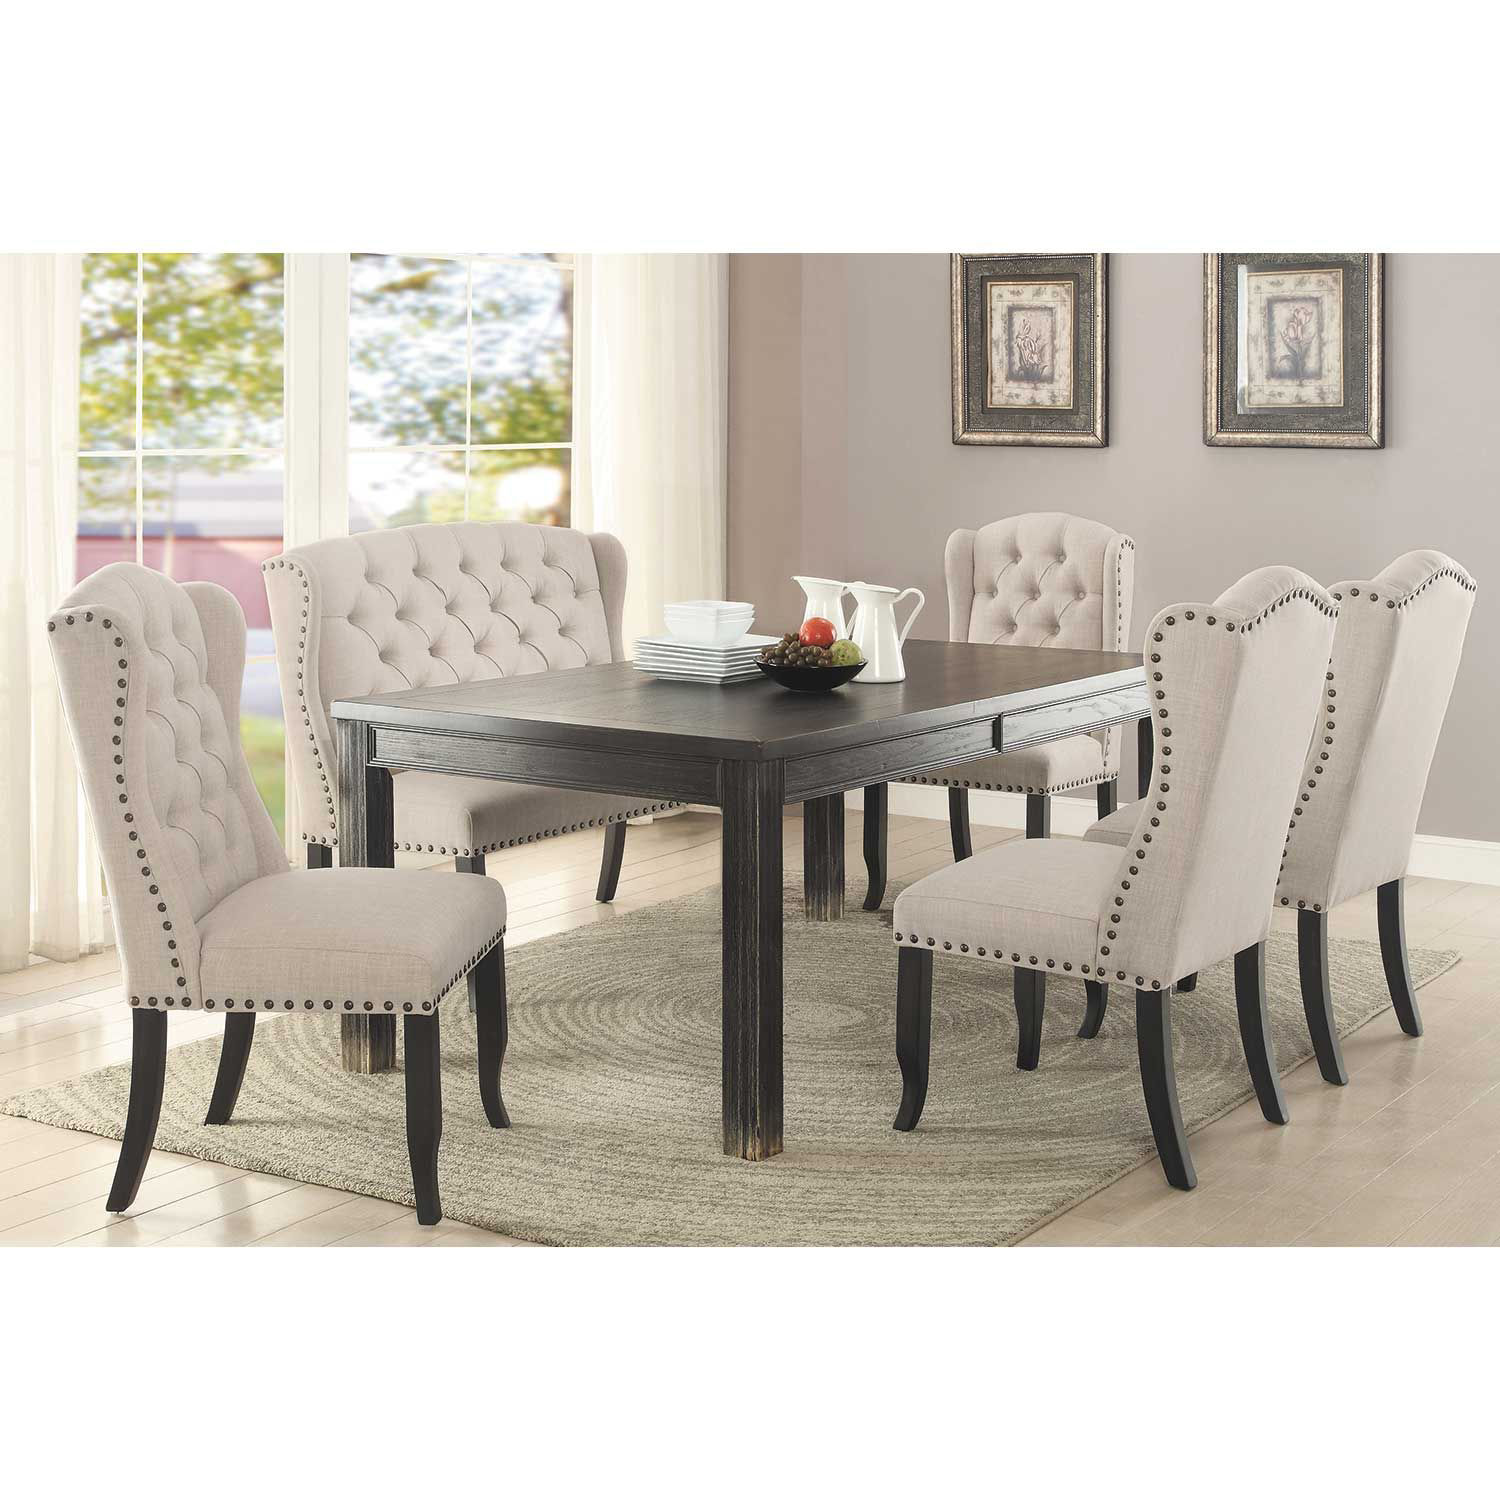 Picture of Ivie 6 Piece Dining Set